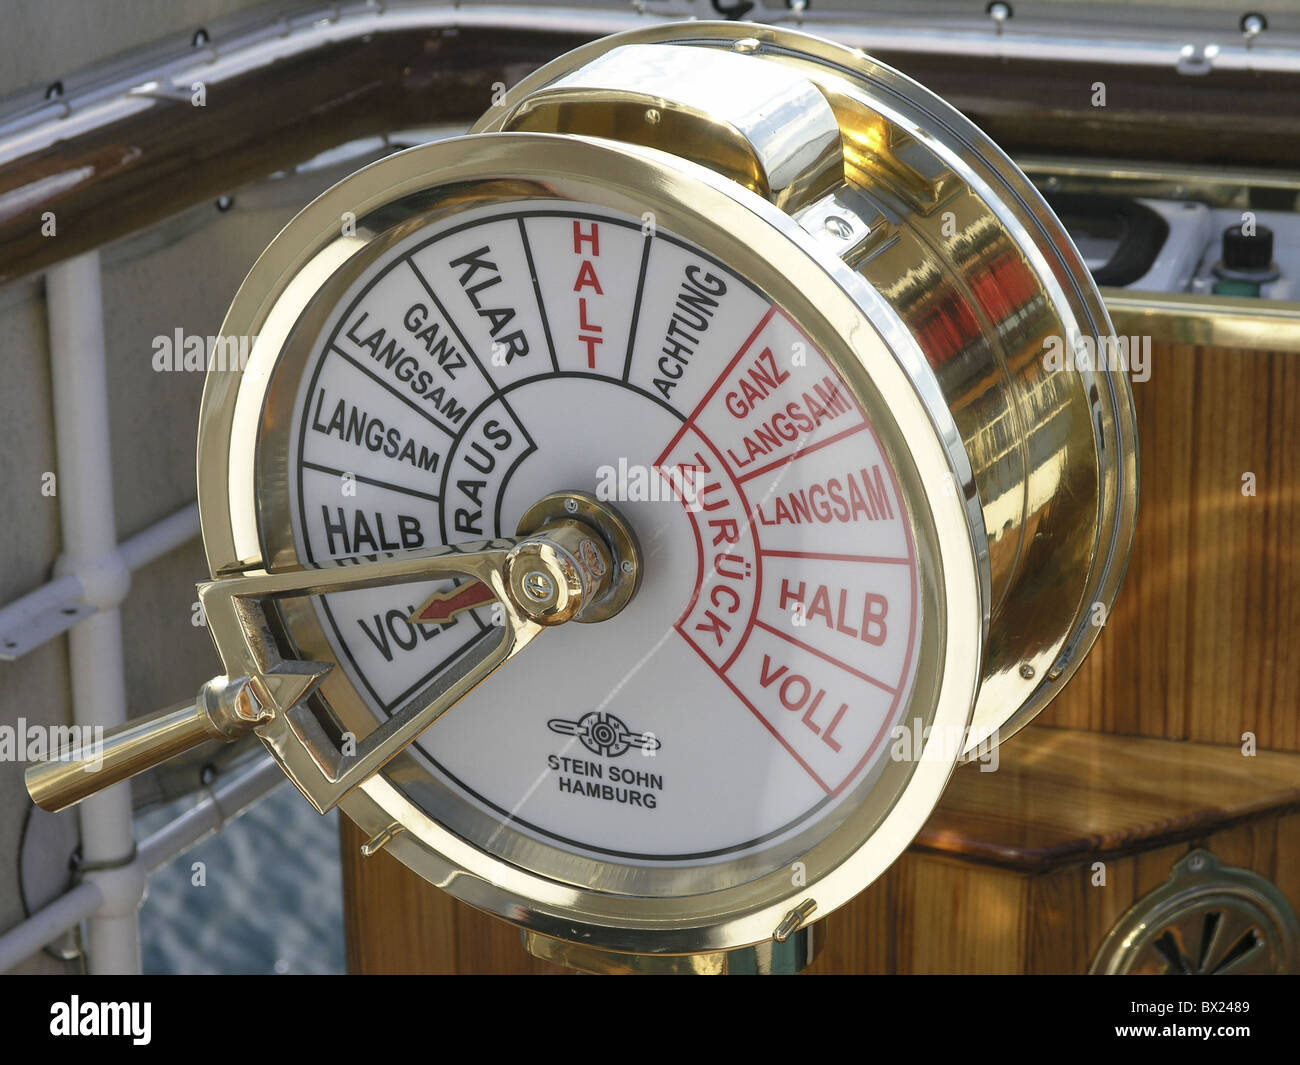 control detail DS Hohentwiel gas lever helm lake Lake of